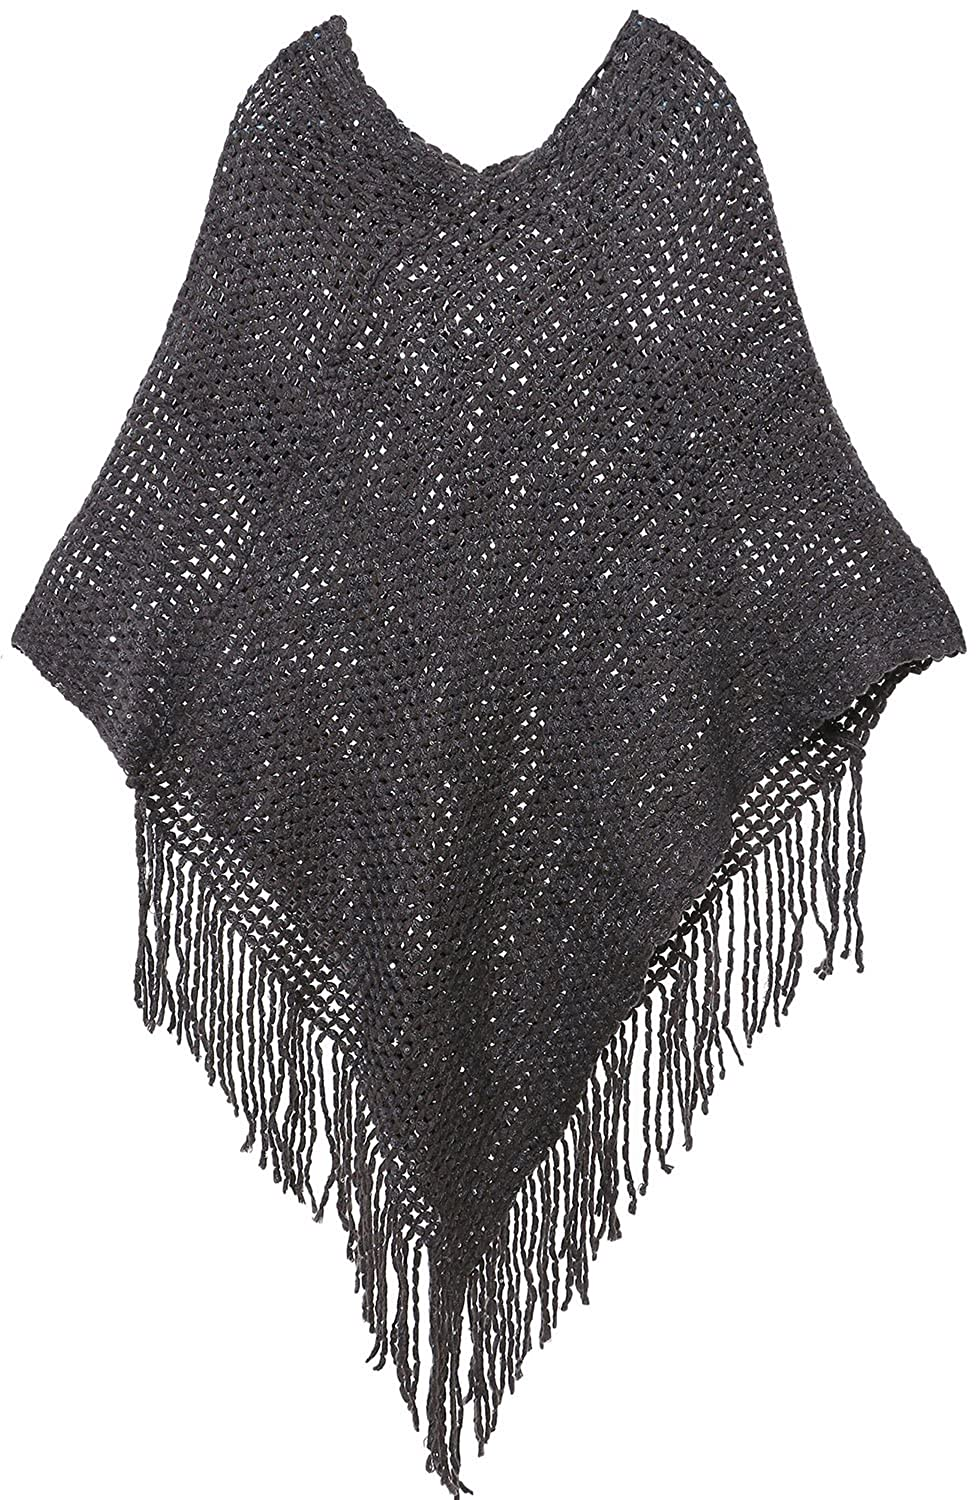 Charcoal Livingston Women's Soft Cozy Knit Fringed Shawl Wrap w Sequins